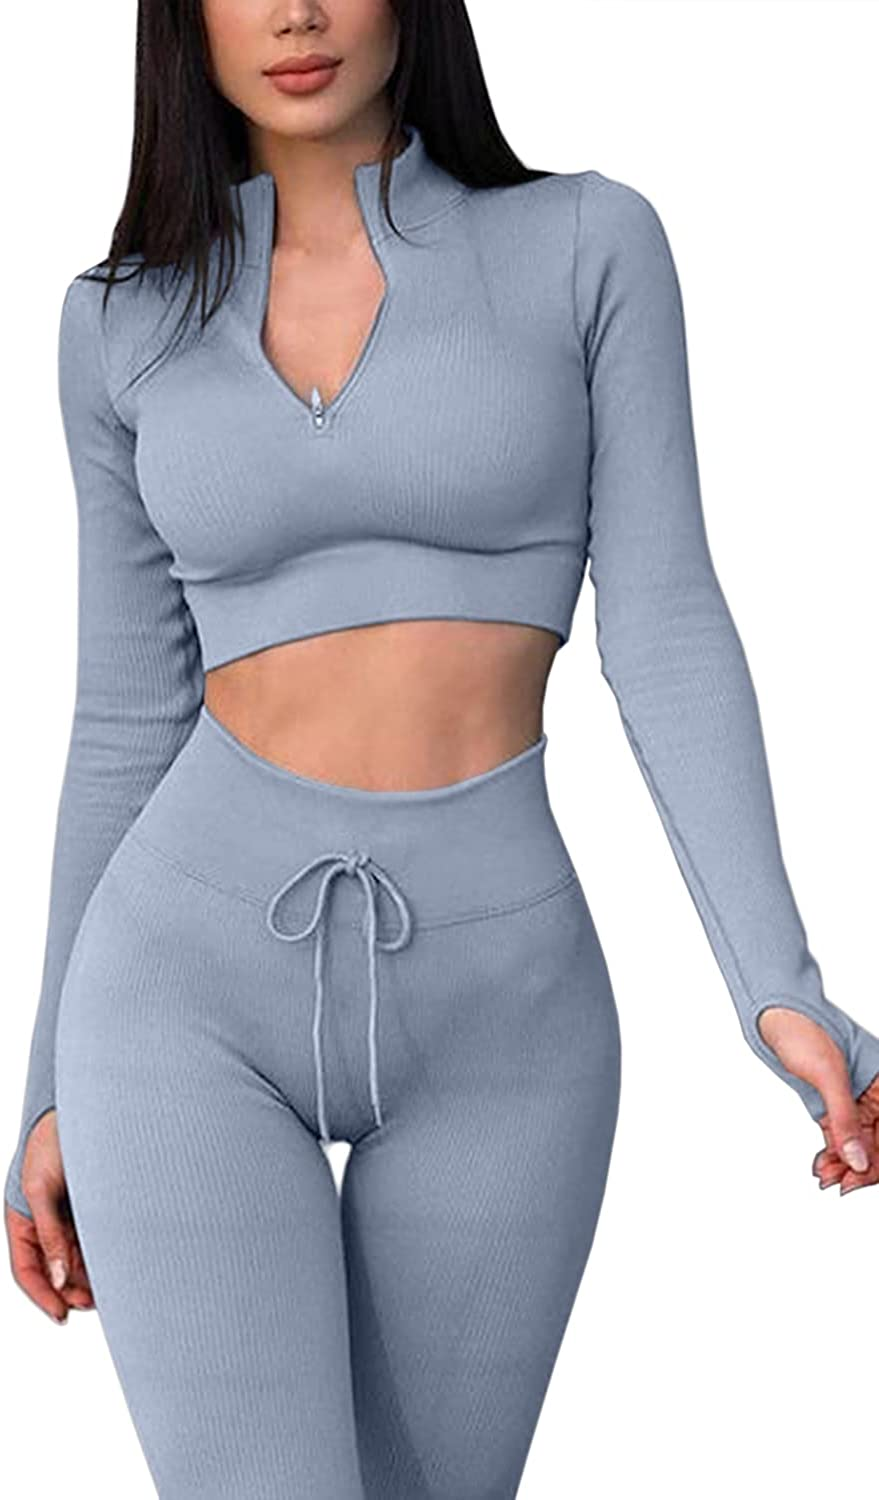 QINSEN Workout Sets for Women 2 Seamless Sales of SALE items from new works Piece Crop sold out Long Sleeve